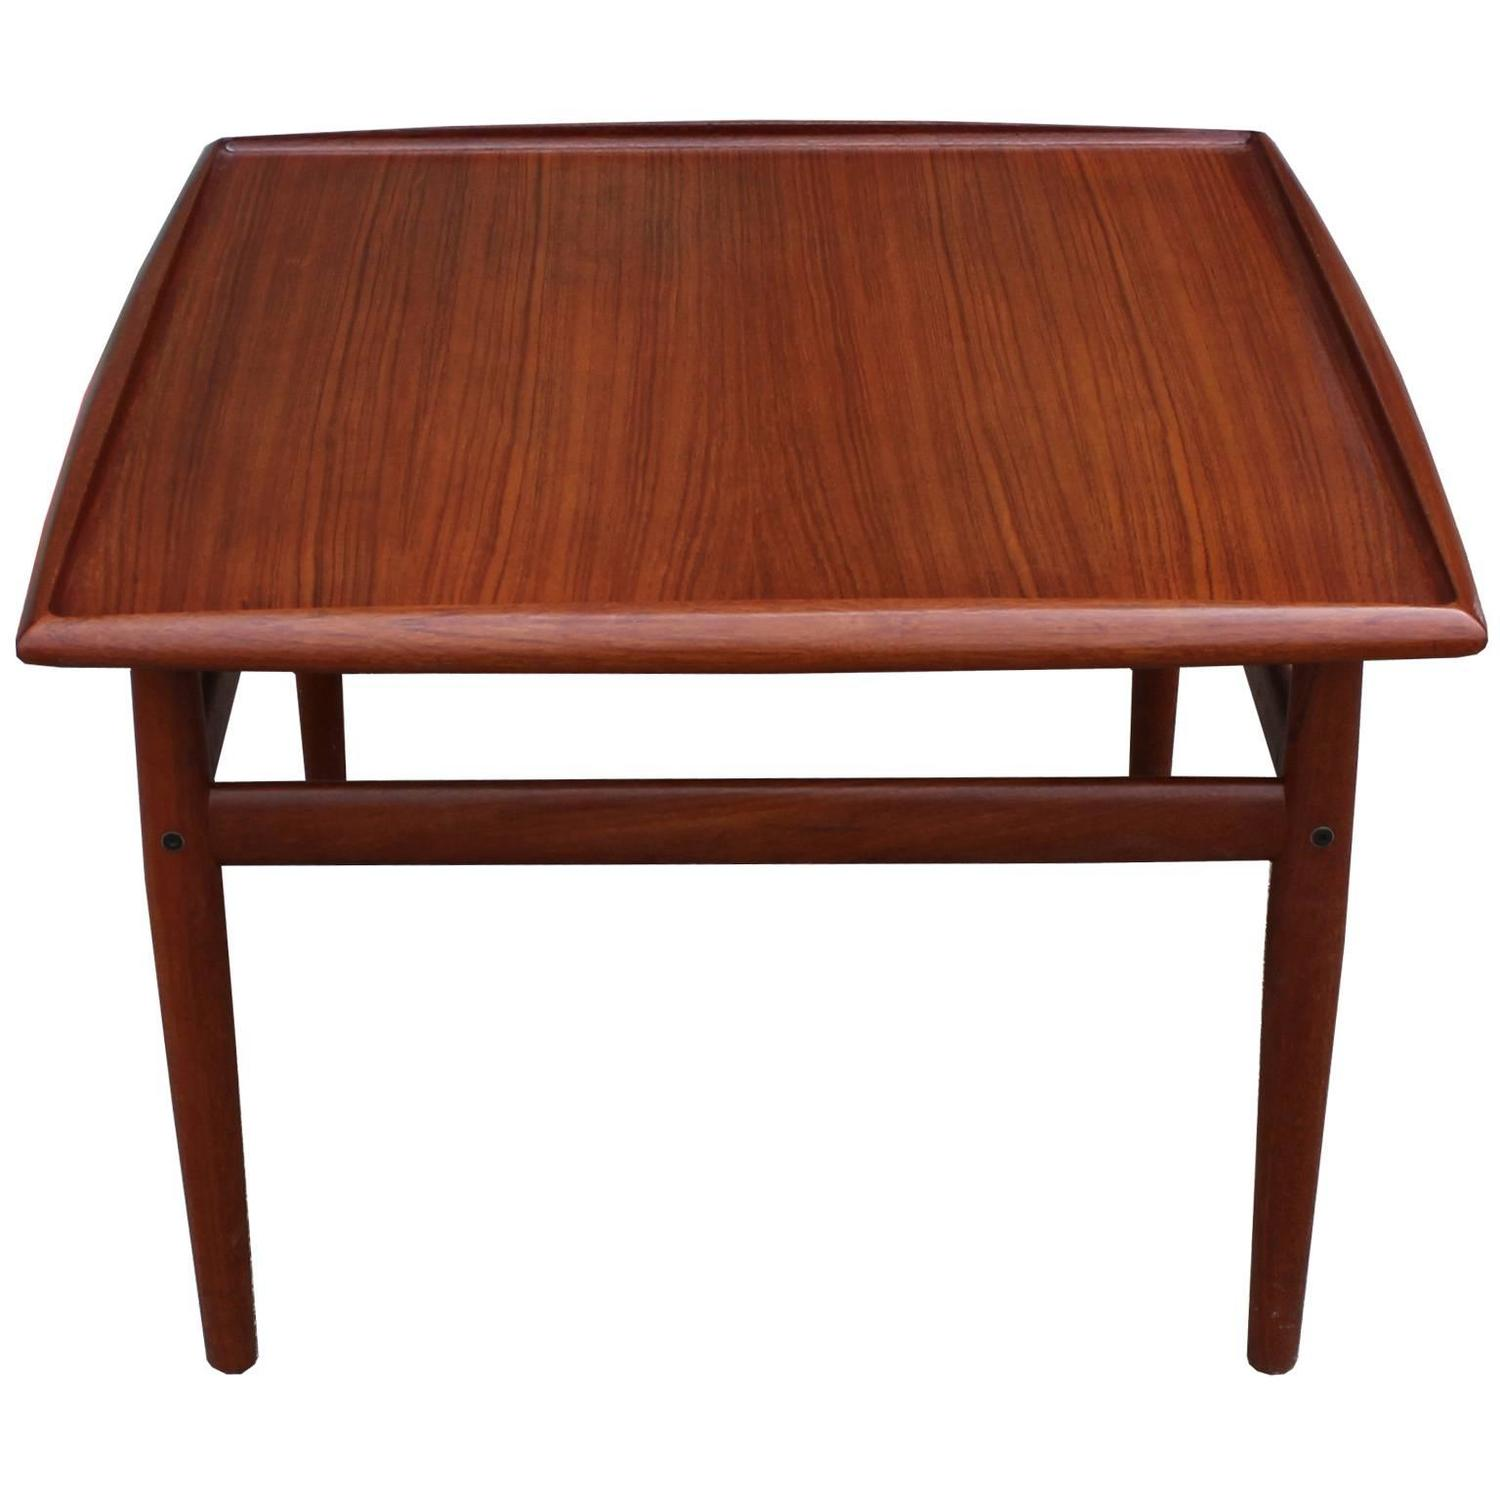 Danish teak square side table by grete jalk at 1stdibs for Square side table